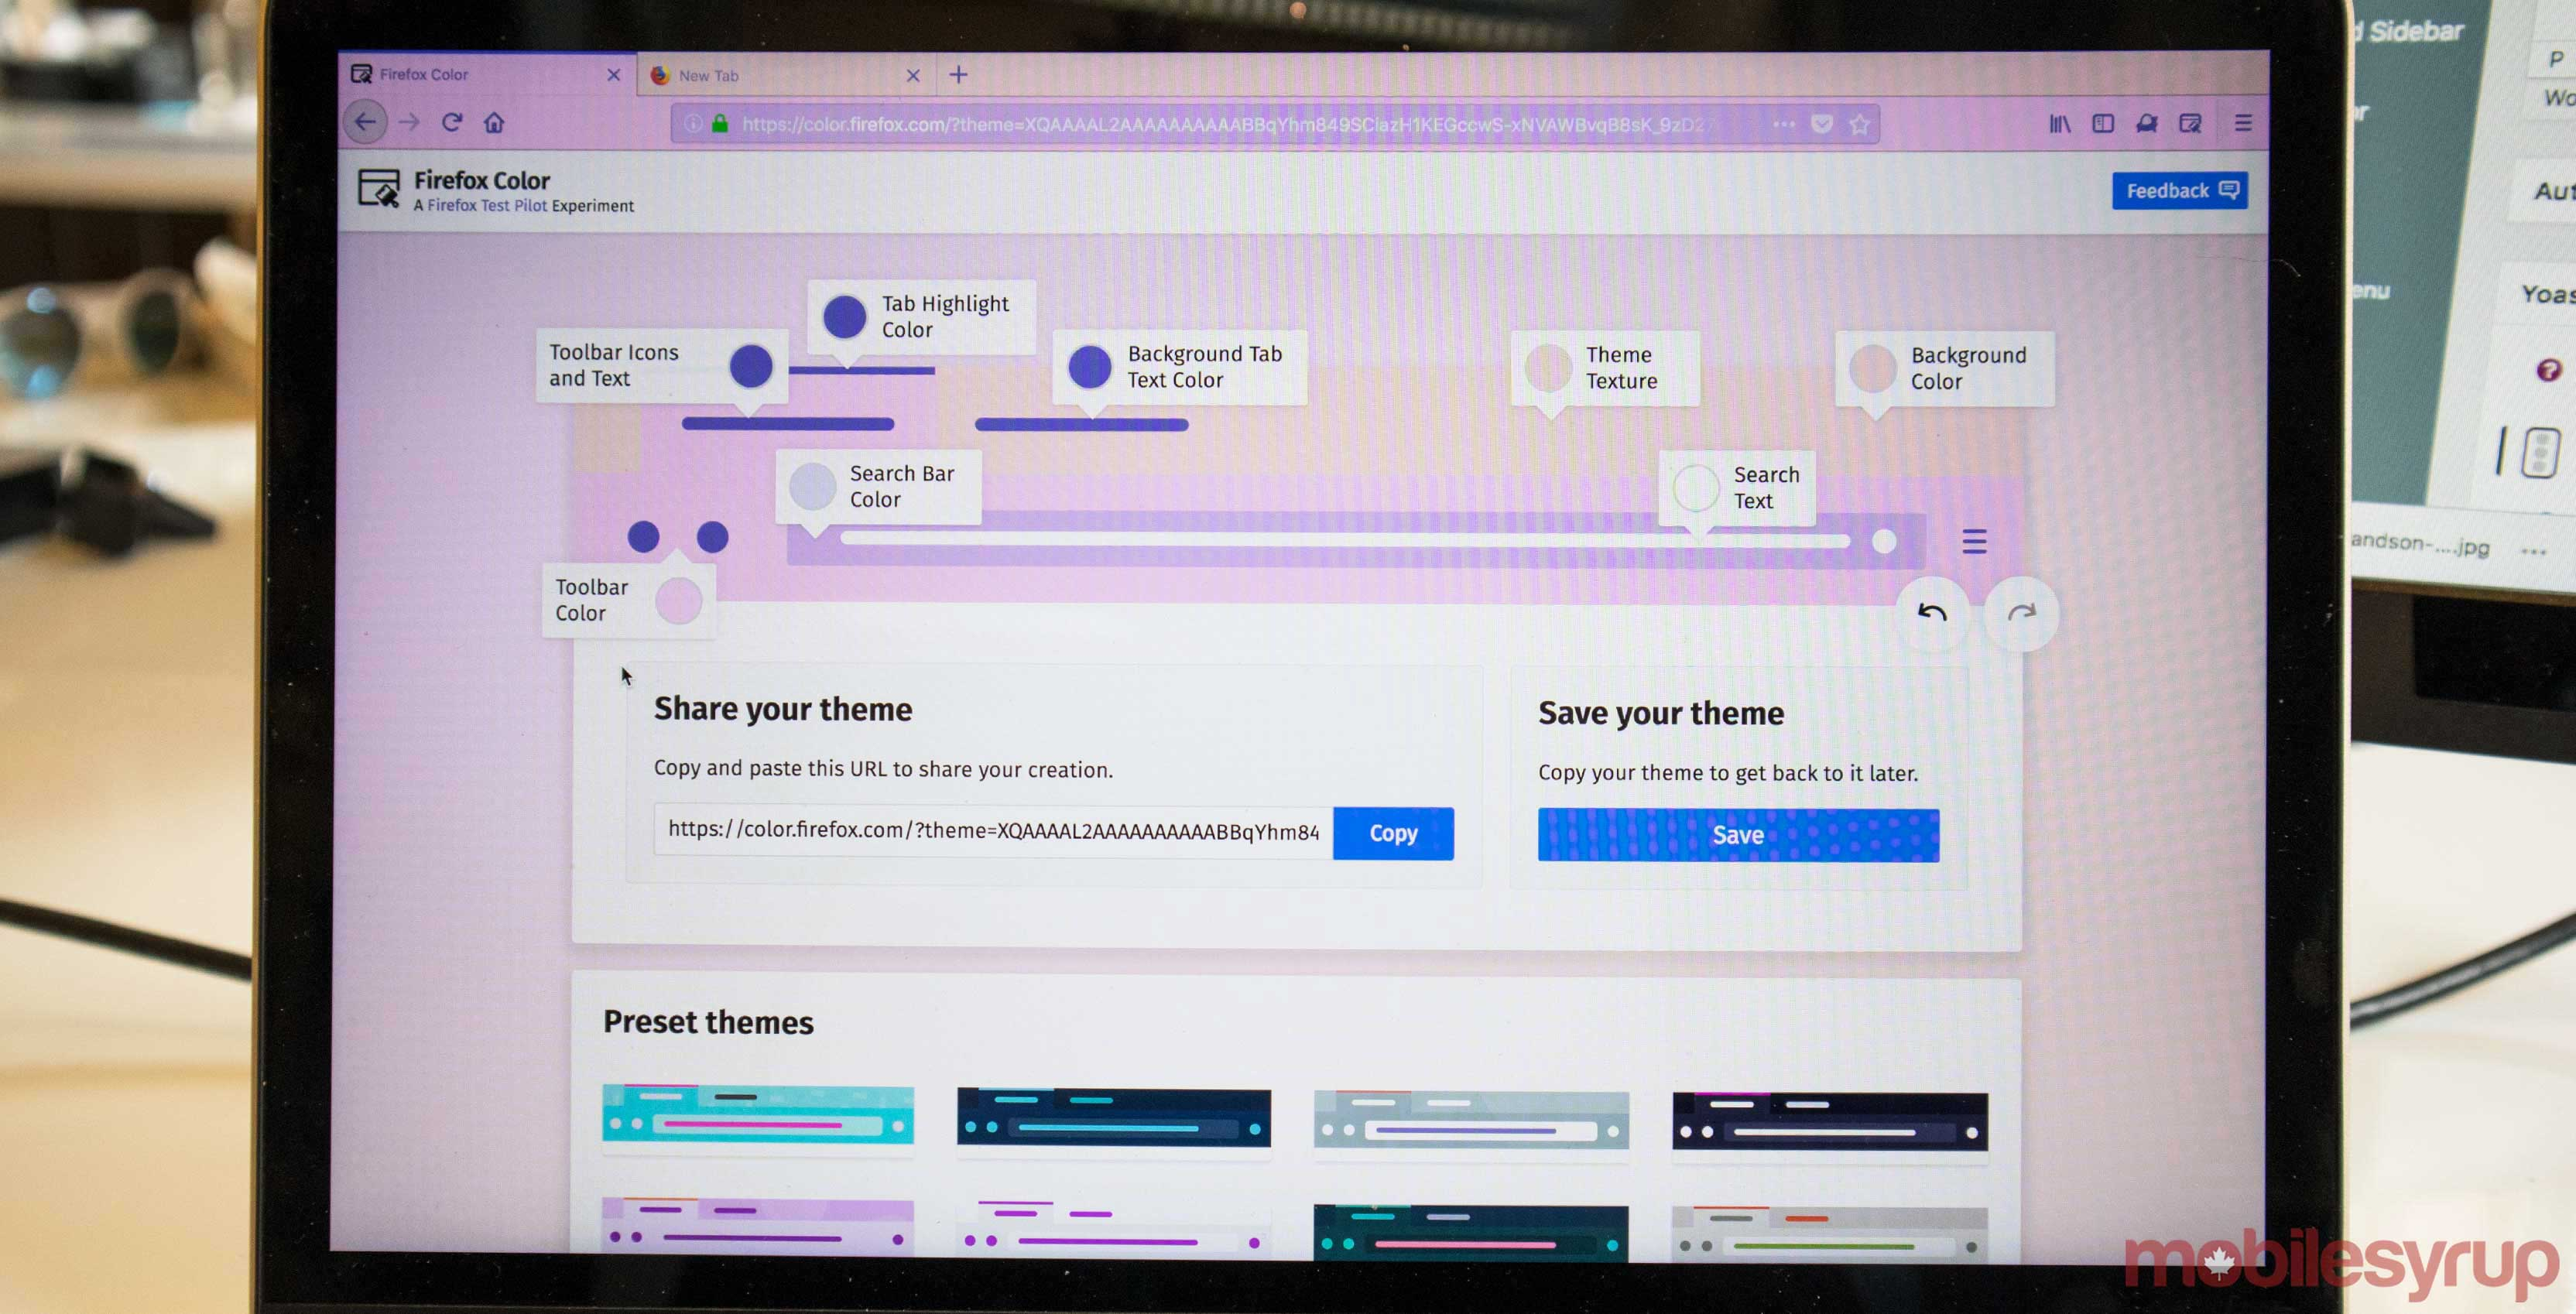 Users can now customize the look and colours of Firefox